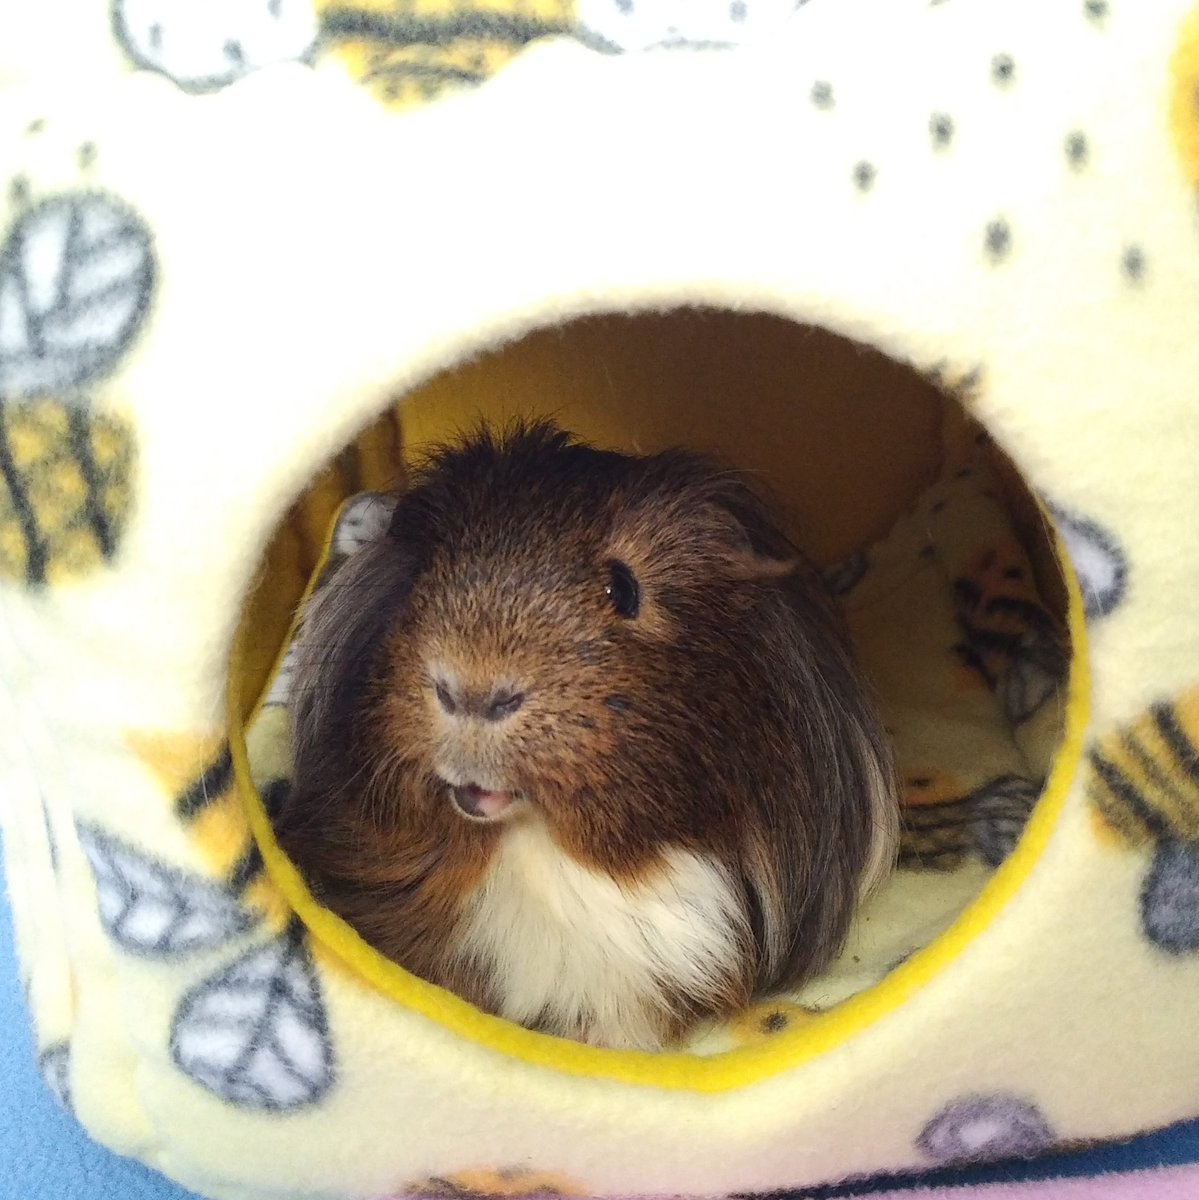 I'll stay here and wait for my #GuineapigAppreciationDay snacks  #guineapigs #CUTENESS #fluffy #mylove #MyHeart<br>http://pic.twitter.com/1uRsuiSn5I